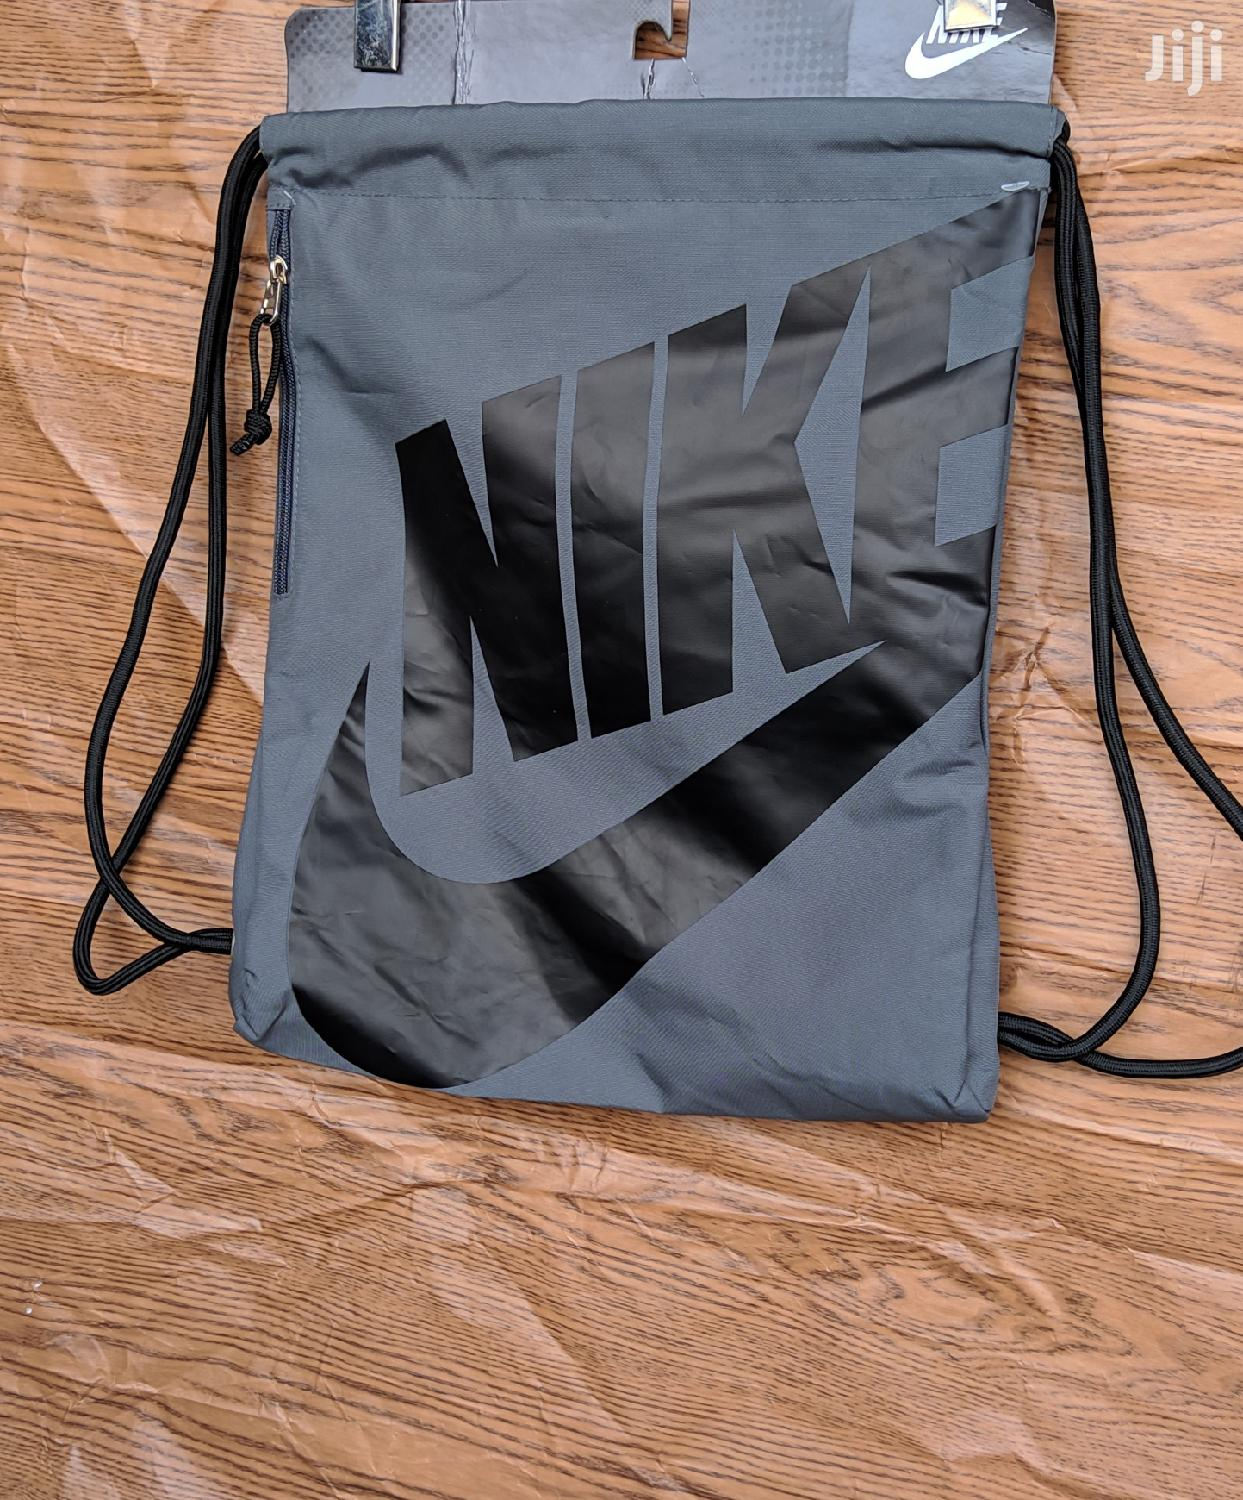 Nike Sports Football/Soccer Boot/Boots Bag | Bags for sale in Korle Gonno, Greater Accra, Ghana